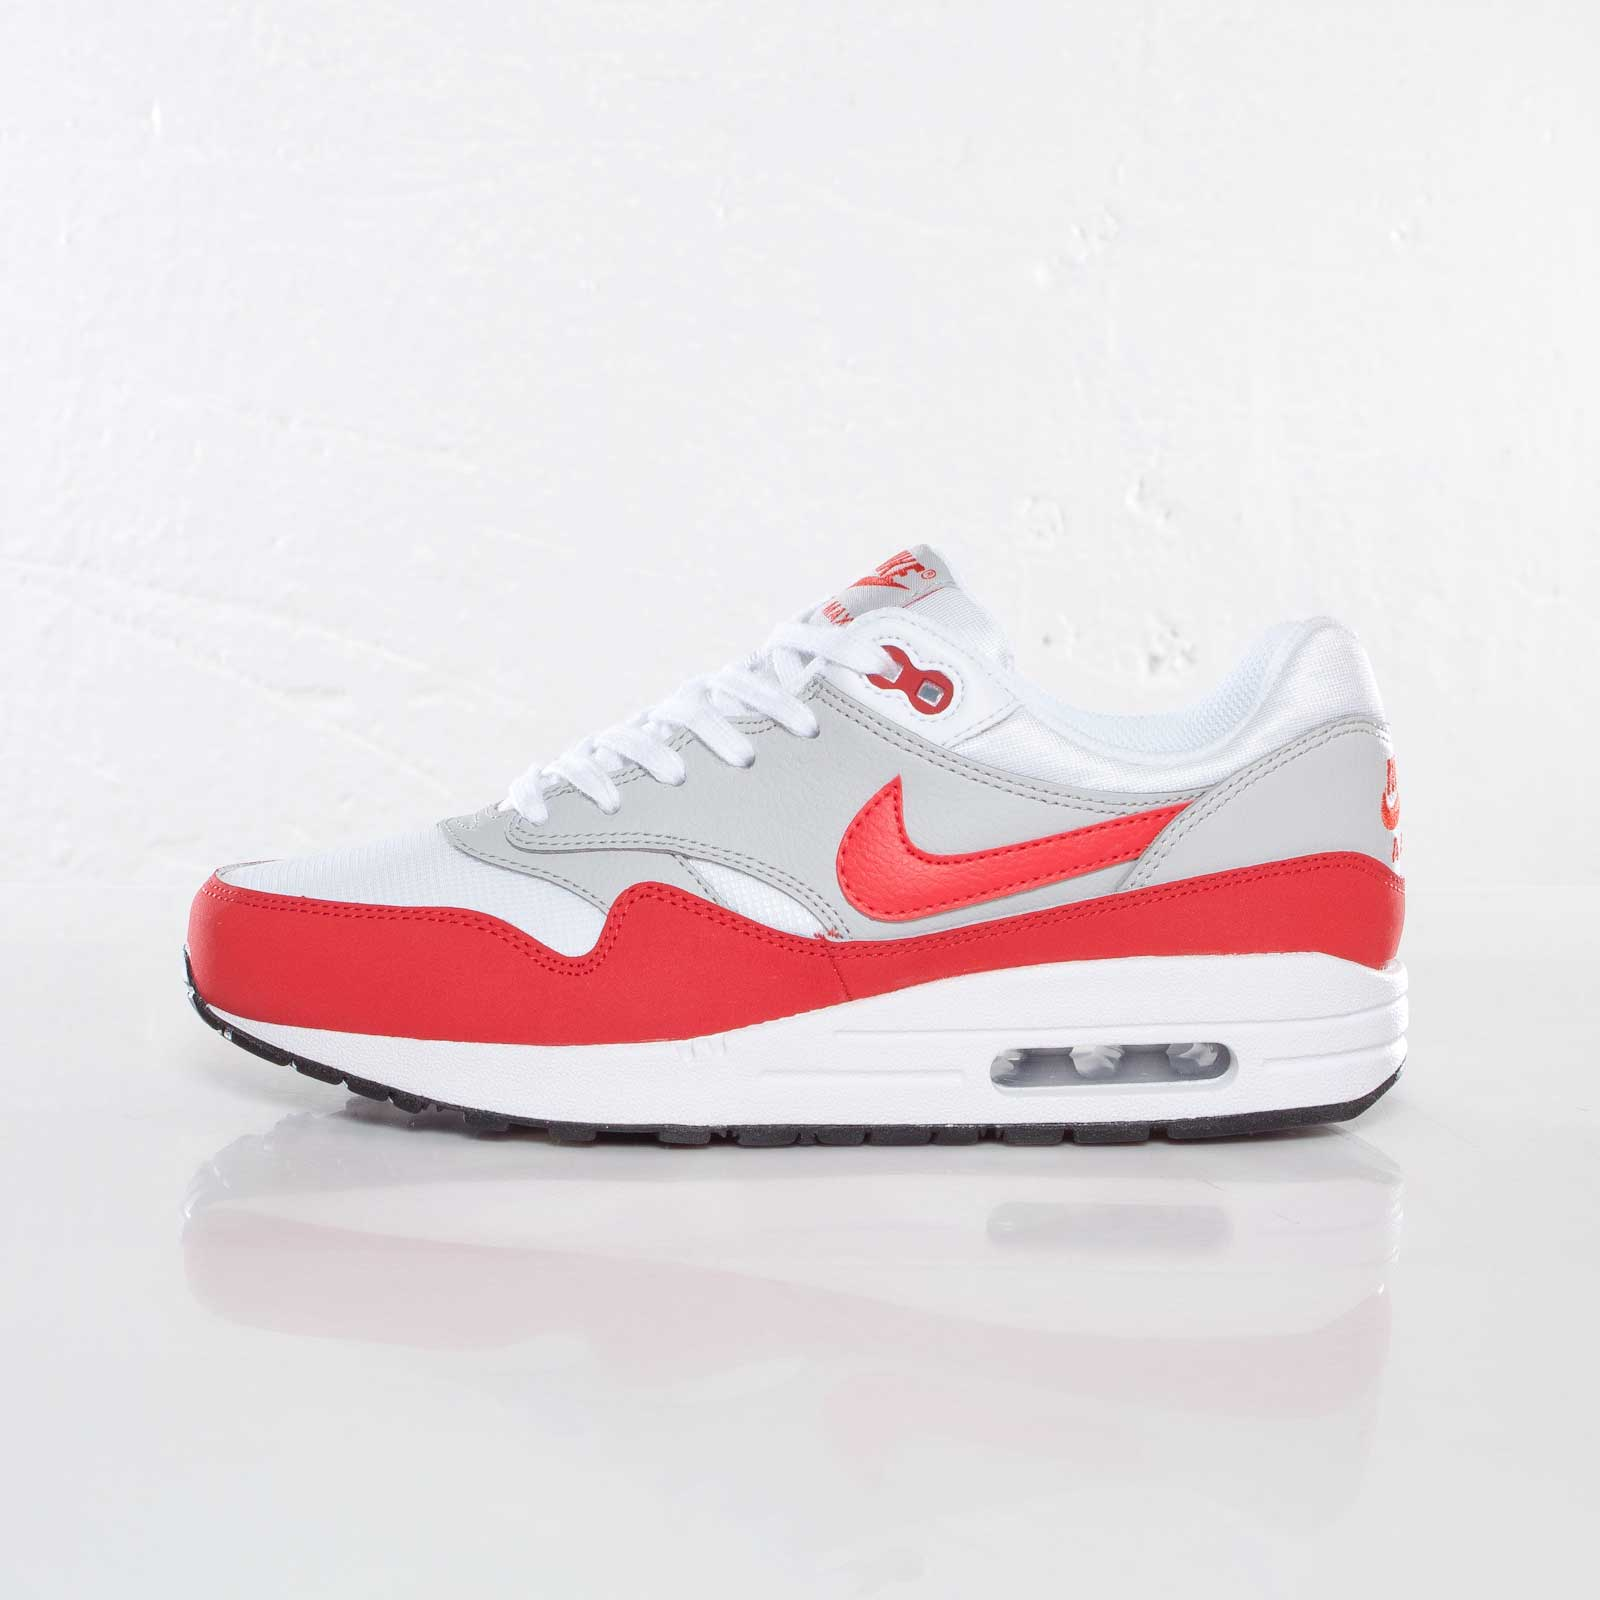 info for 6609e bbc98 Nike Air Max 1 (GS) - 555766-101 - Sneakersnstuff   sneakers   streetwear  online since 1999